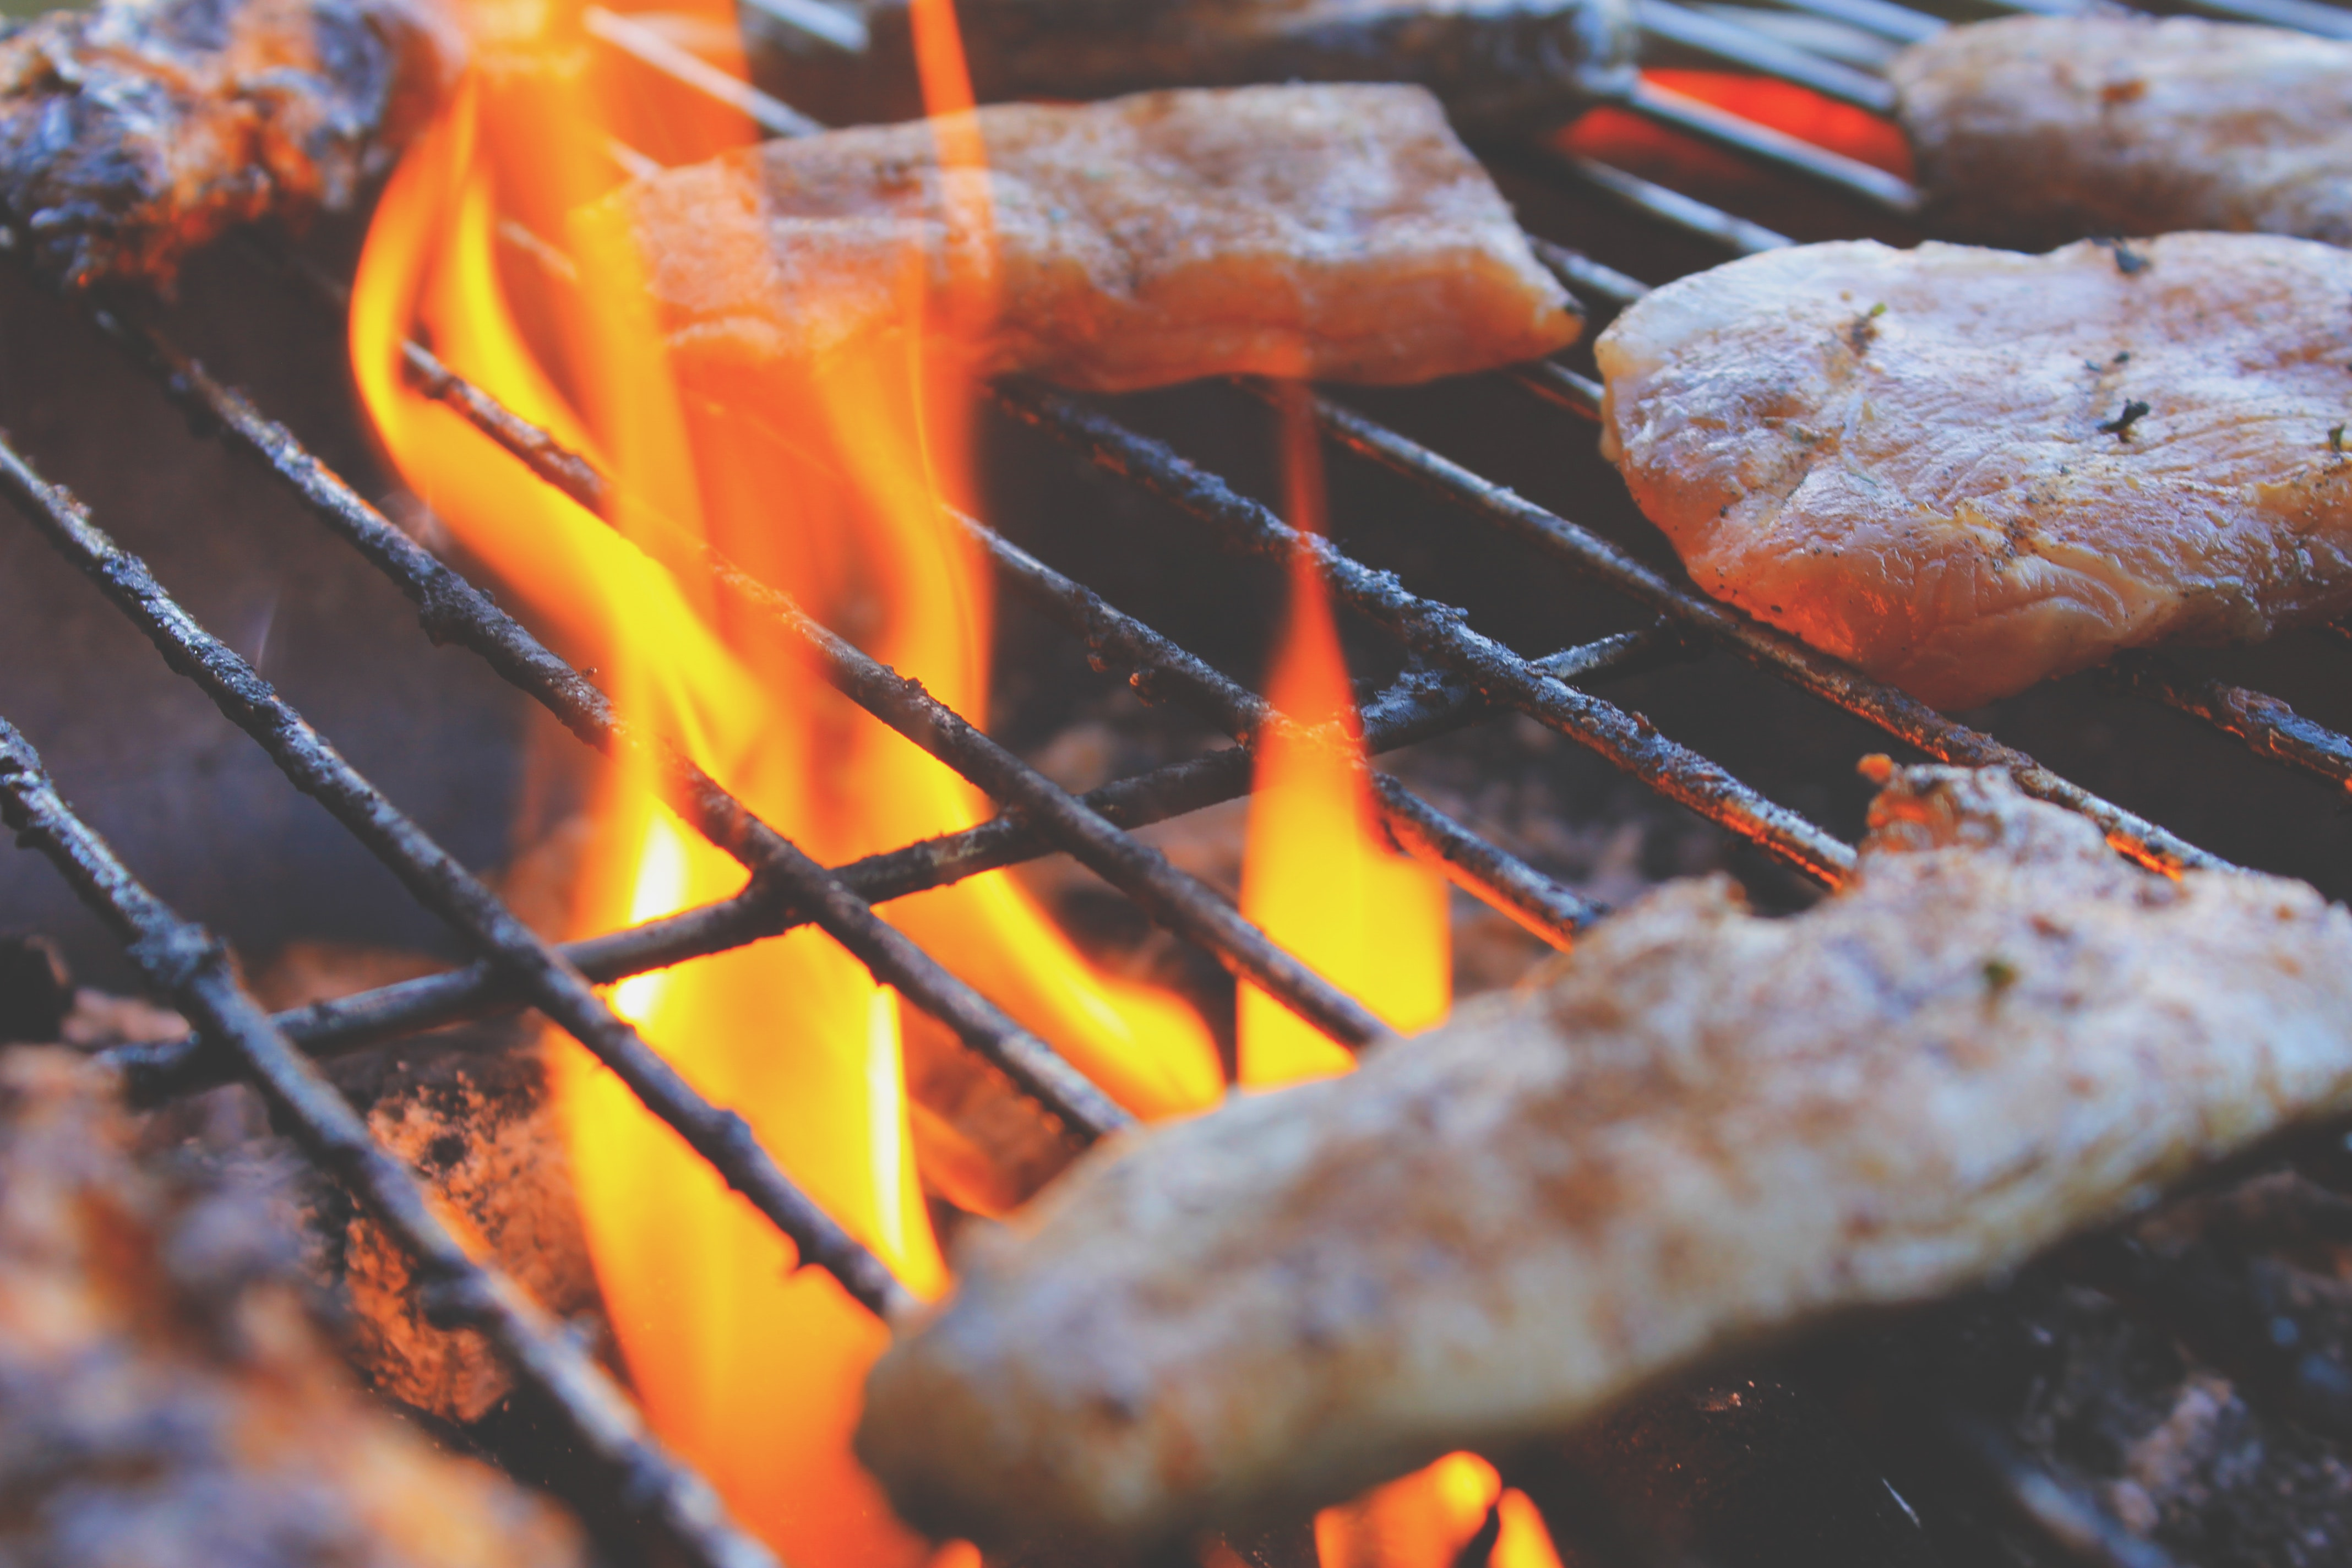 Tips for Choosing the Best Grill for Your Needs